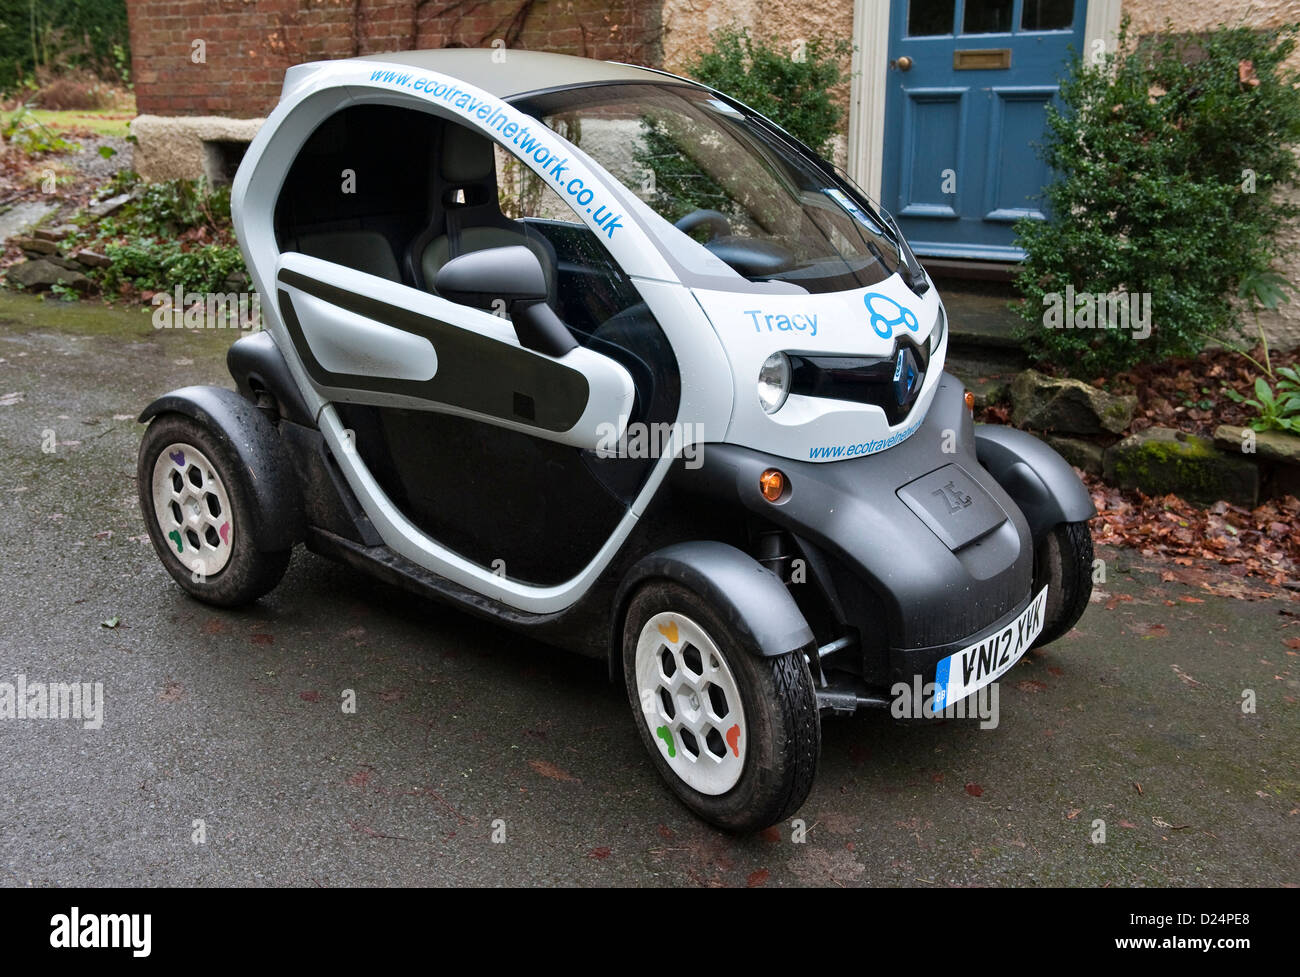 wales uk a renault twizy electric city car stock photo royalty free image 52965872 alamy. Black Bedroom Furniture Sets. Home Design Ideas